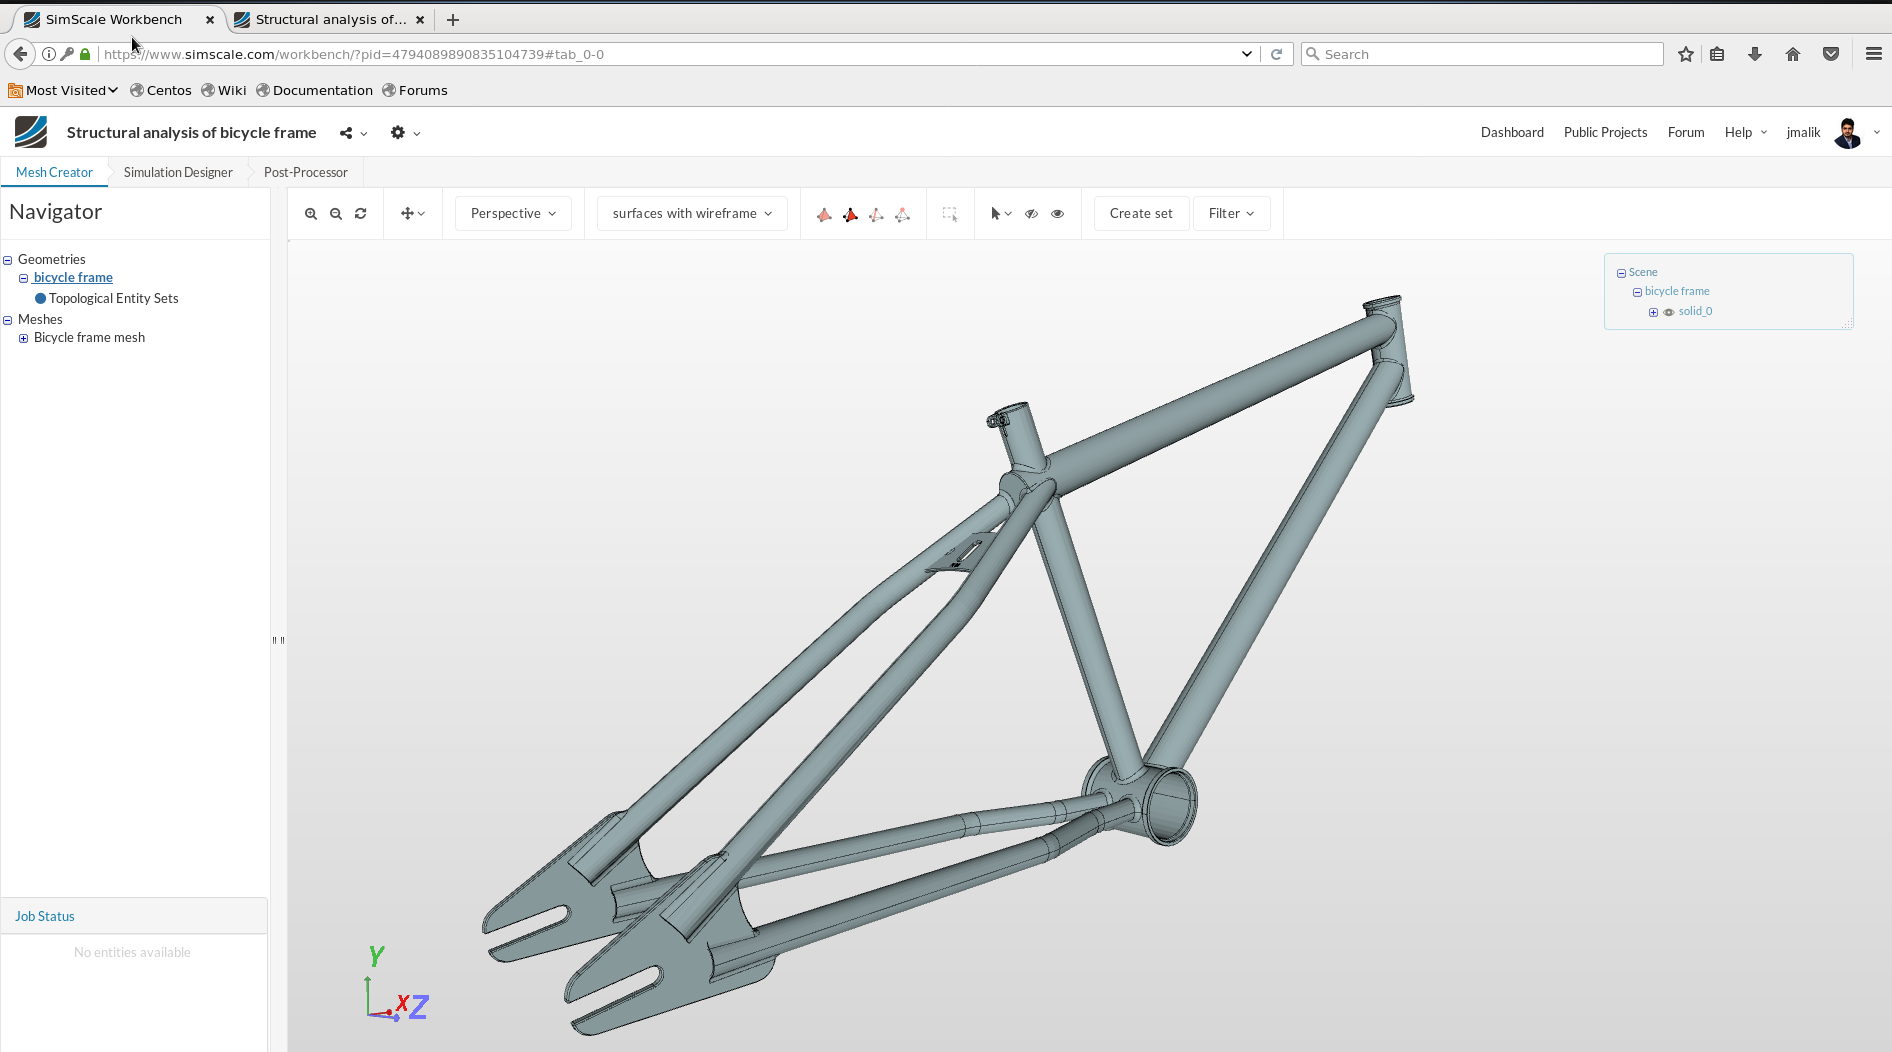 Structural analysis of a bicycle frame - Projects - SimScale CAE Forum